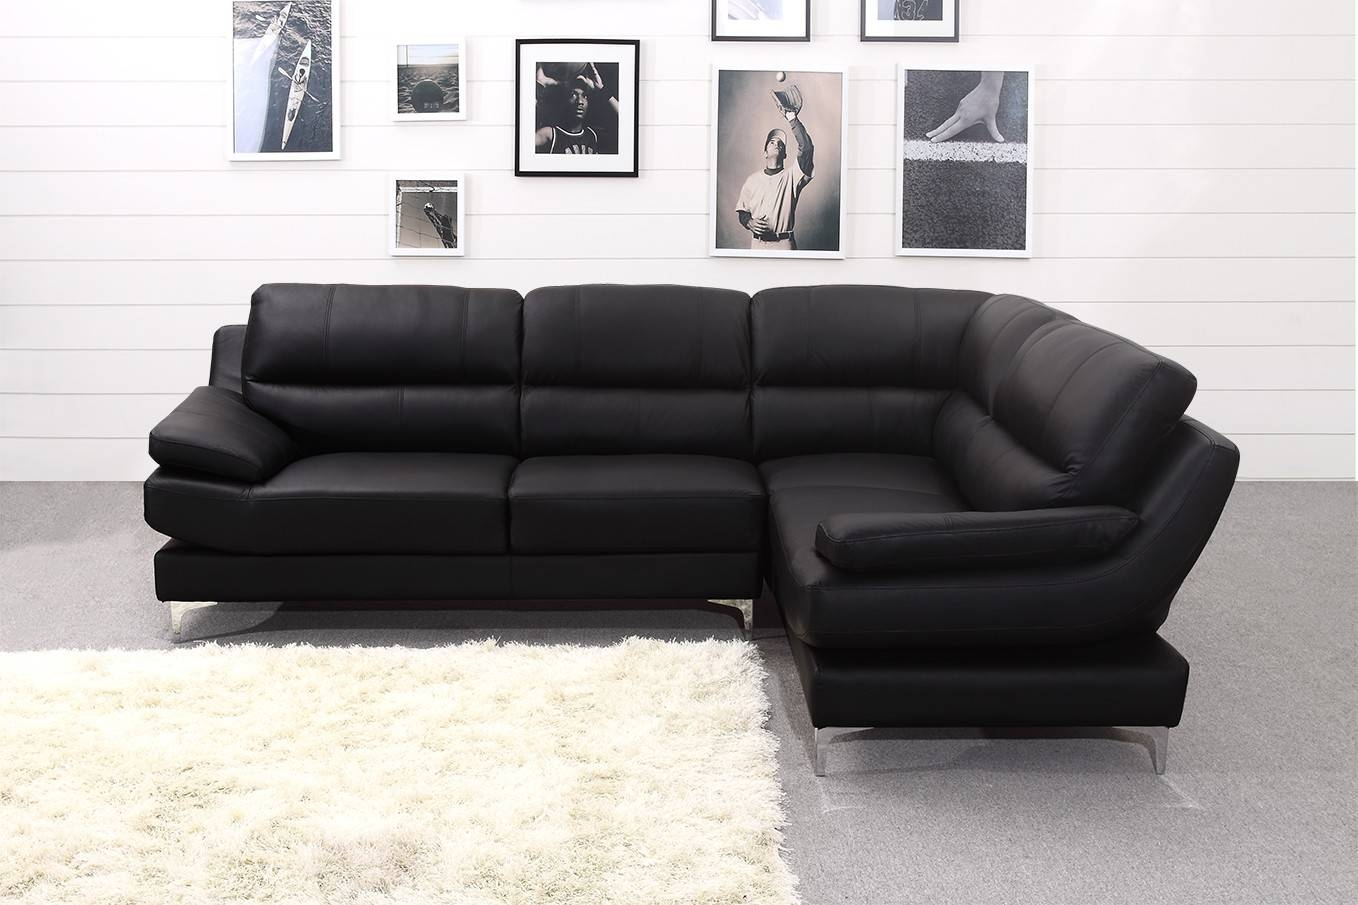 Leather Corner Sofa | Tehranmix Decoration inside Cheap Corner Sofas (Image 12 of 30)